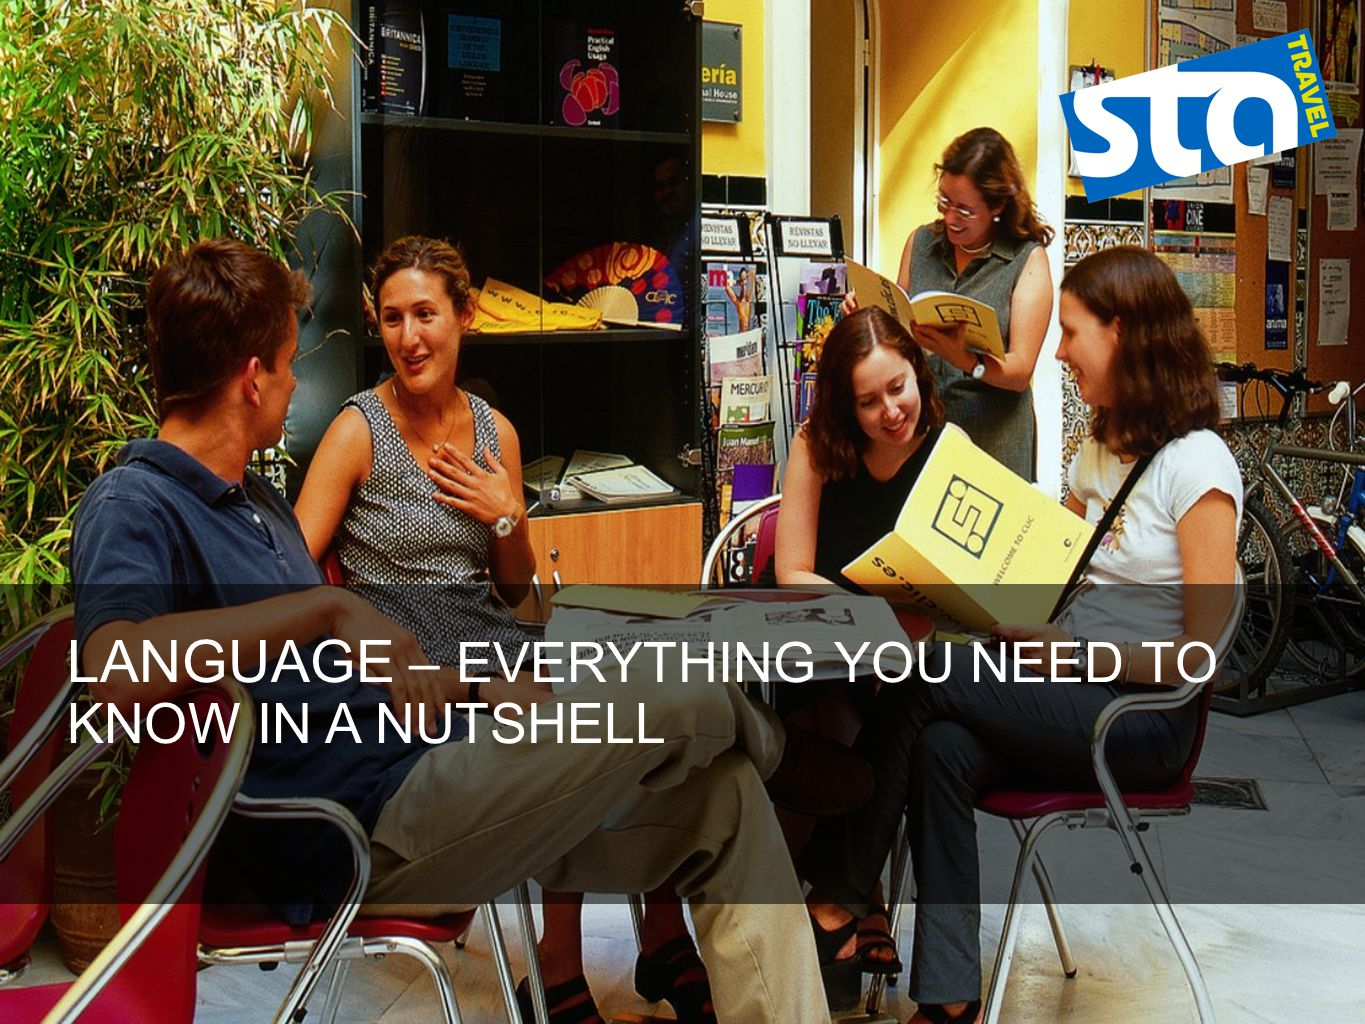 LANGUAGE – EVERYTHING YOU NEED TO KNOW IN A NUTSHELL